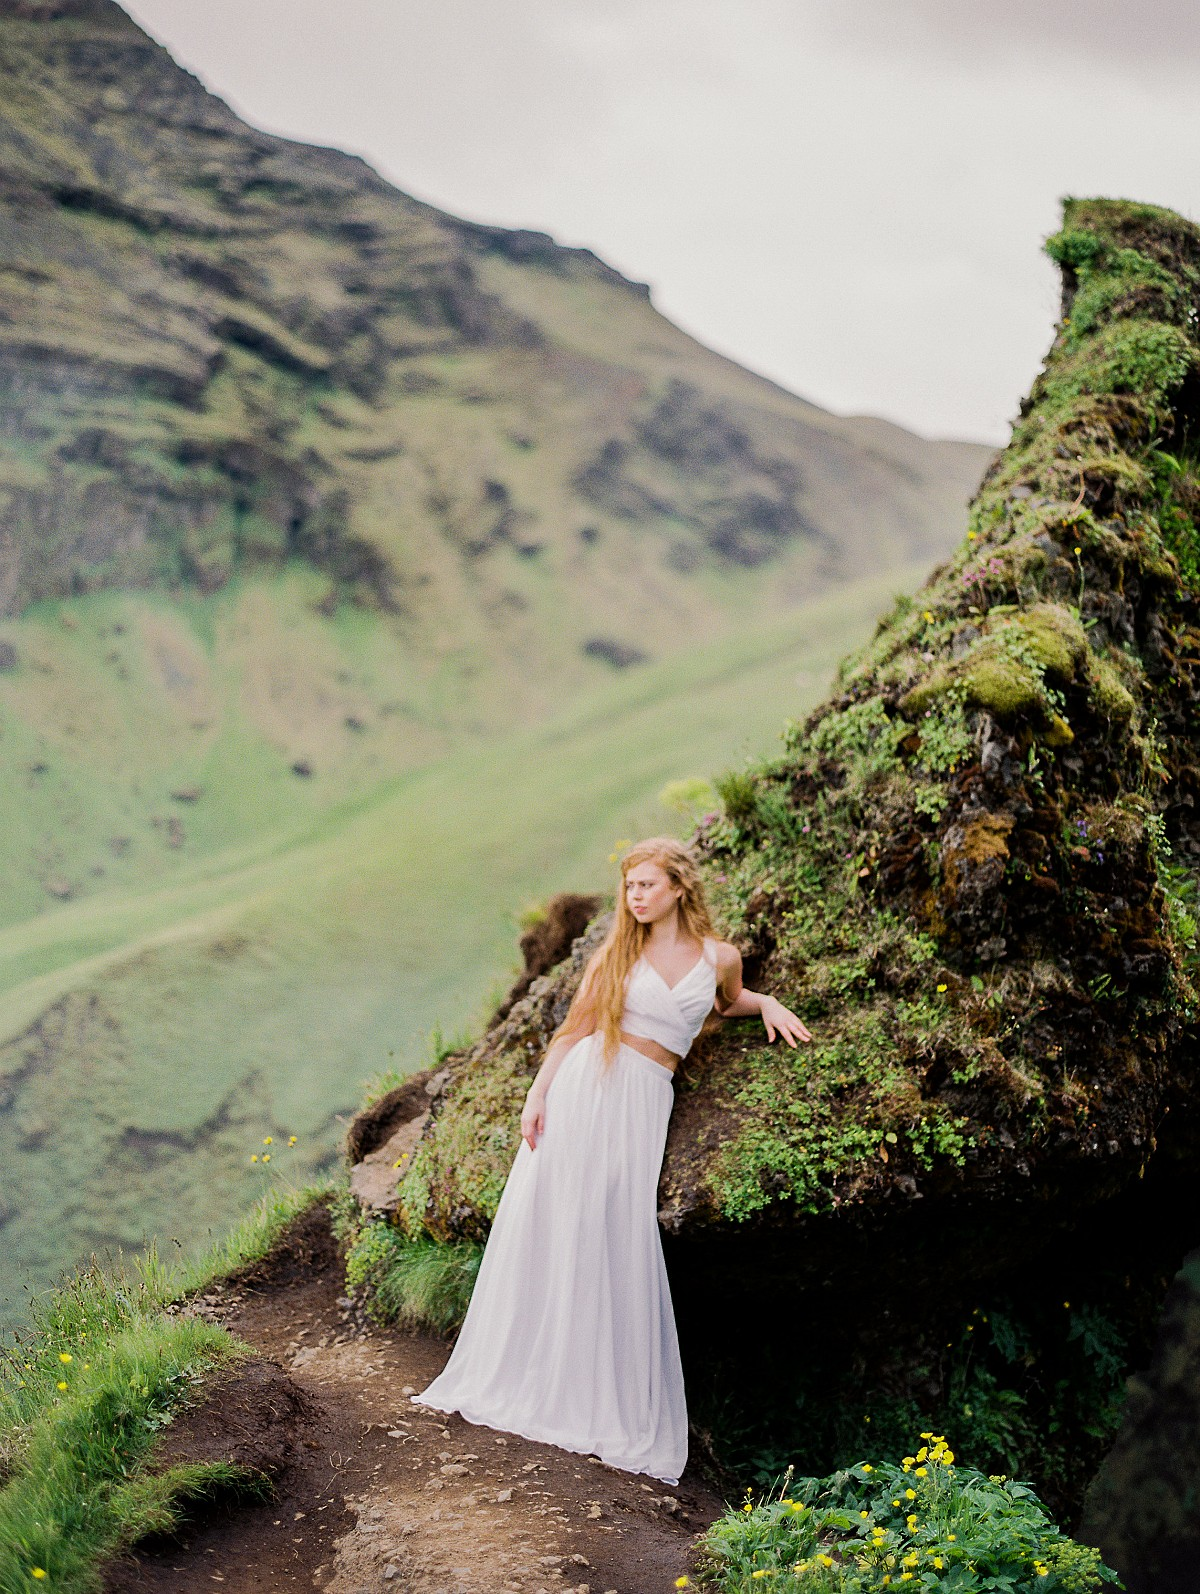 Bridal Session in rugged Icelandic Terrain by CJK Visuals on Wedding Sparrow | Iceland photoshoot